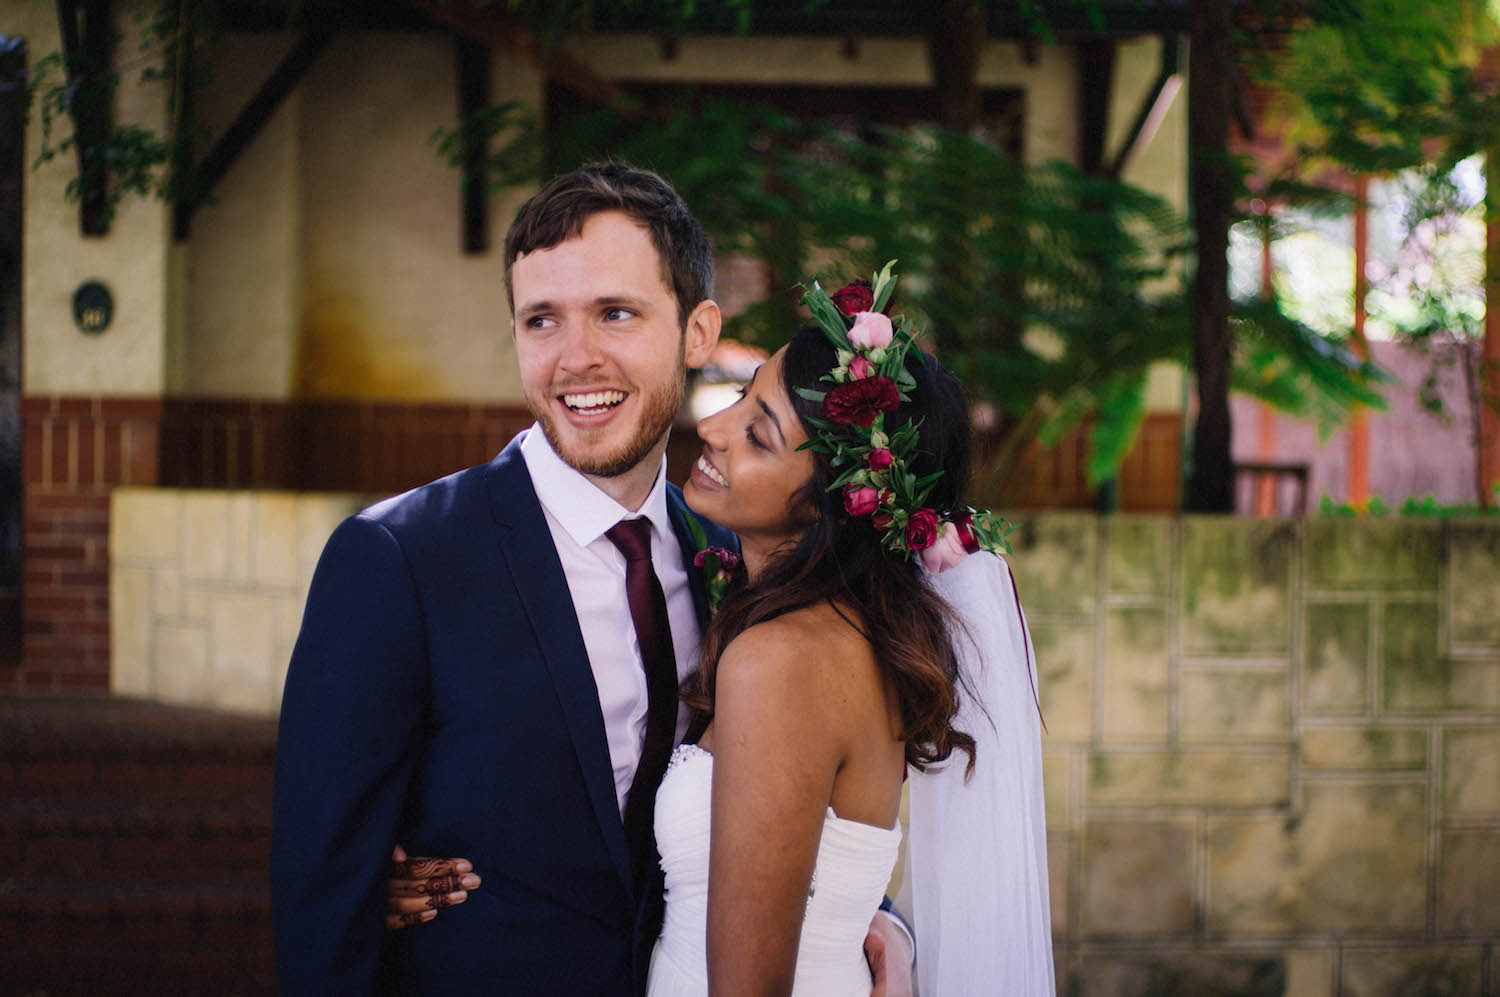 Jibb & Tripthi laugh together during their wedding portrait session in Subiaco, captured by Rhianna May Destination Wedding Photographer.